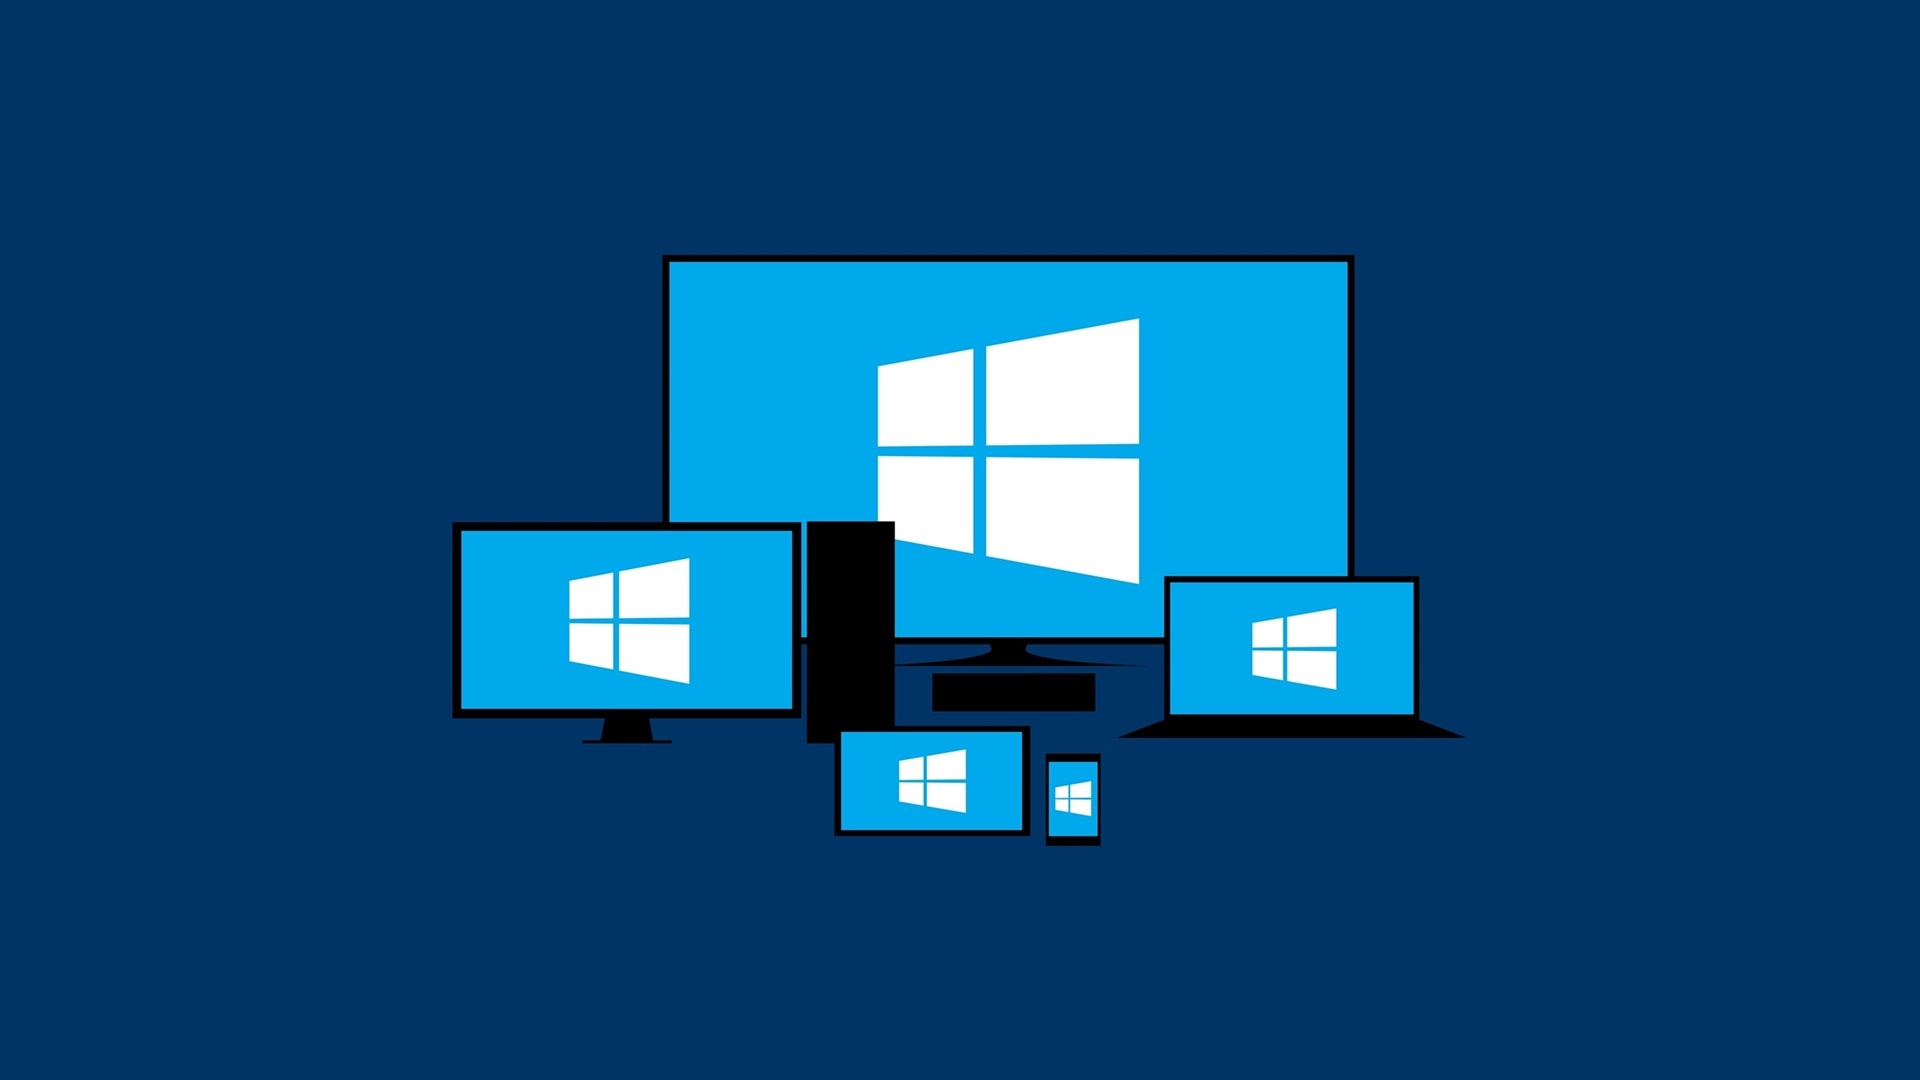 Windows 10 dispositivos